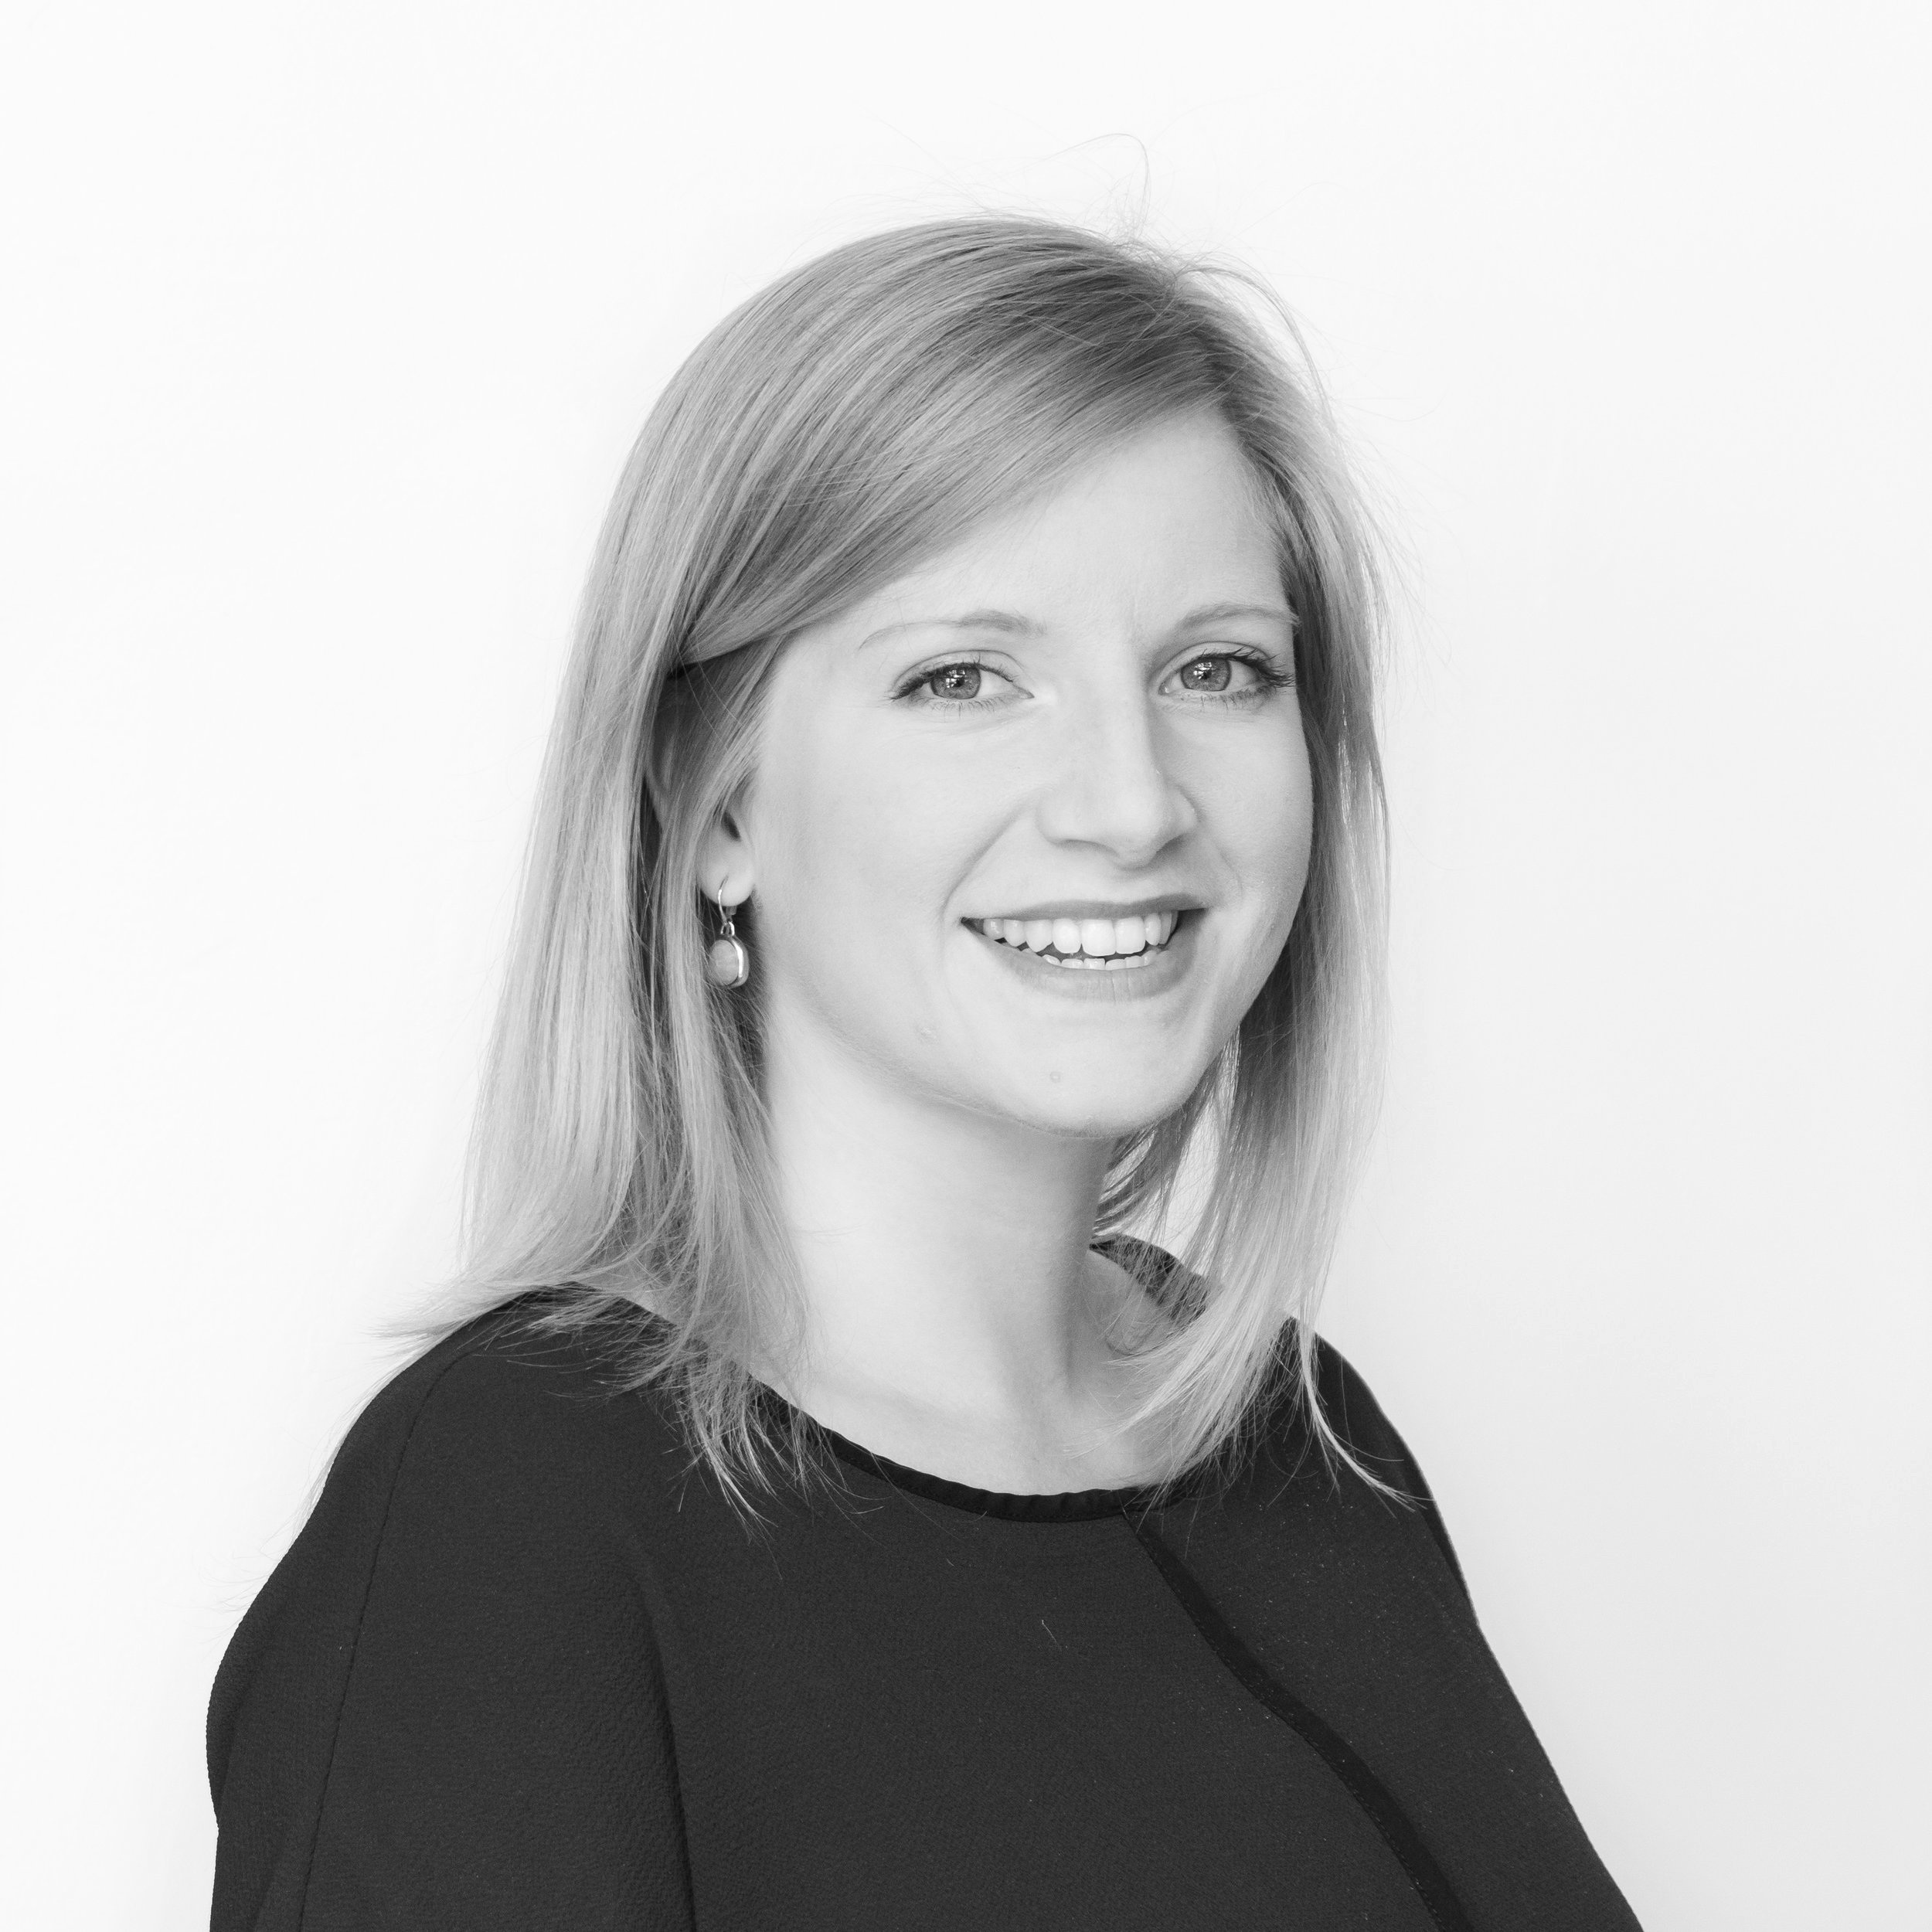 Charlotte Sanders -  Associate  Charlotte joined AndArchitects in 2011 and became a Chartered Architect in 2012. Prior to joining AndArchitects, Charlotte studied at Nottingham and Westminster Universities and held jobs at several practices including Foster and Partners. Since joining, Charlotte has worked on a great variety of residential and high profile commercial projects. Charlotte's client led approach and creative flair complements her focus and organisation skills.